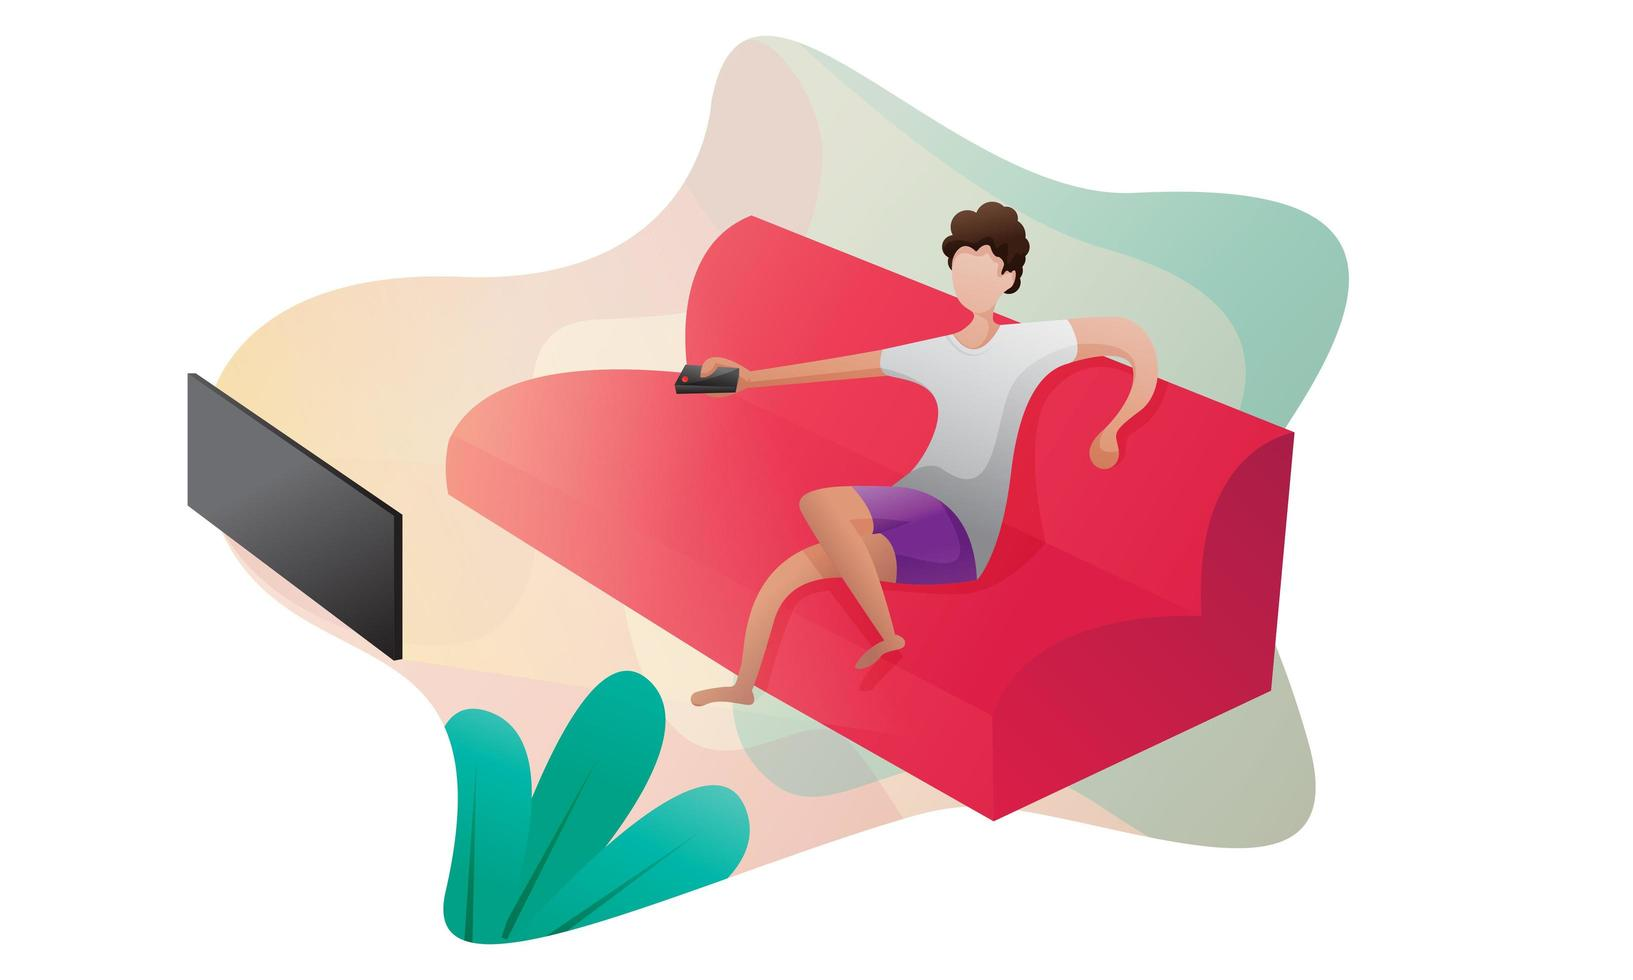 Stay Home Couch Concept Illustration vector